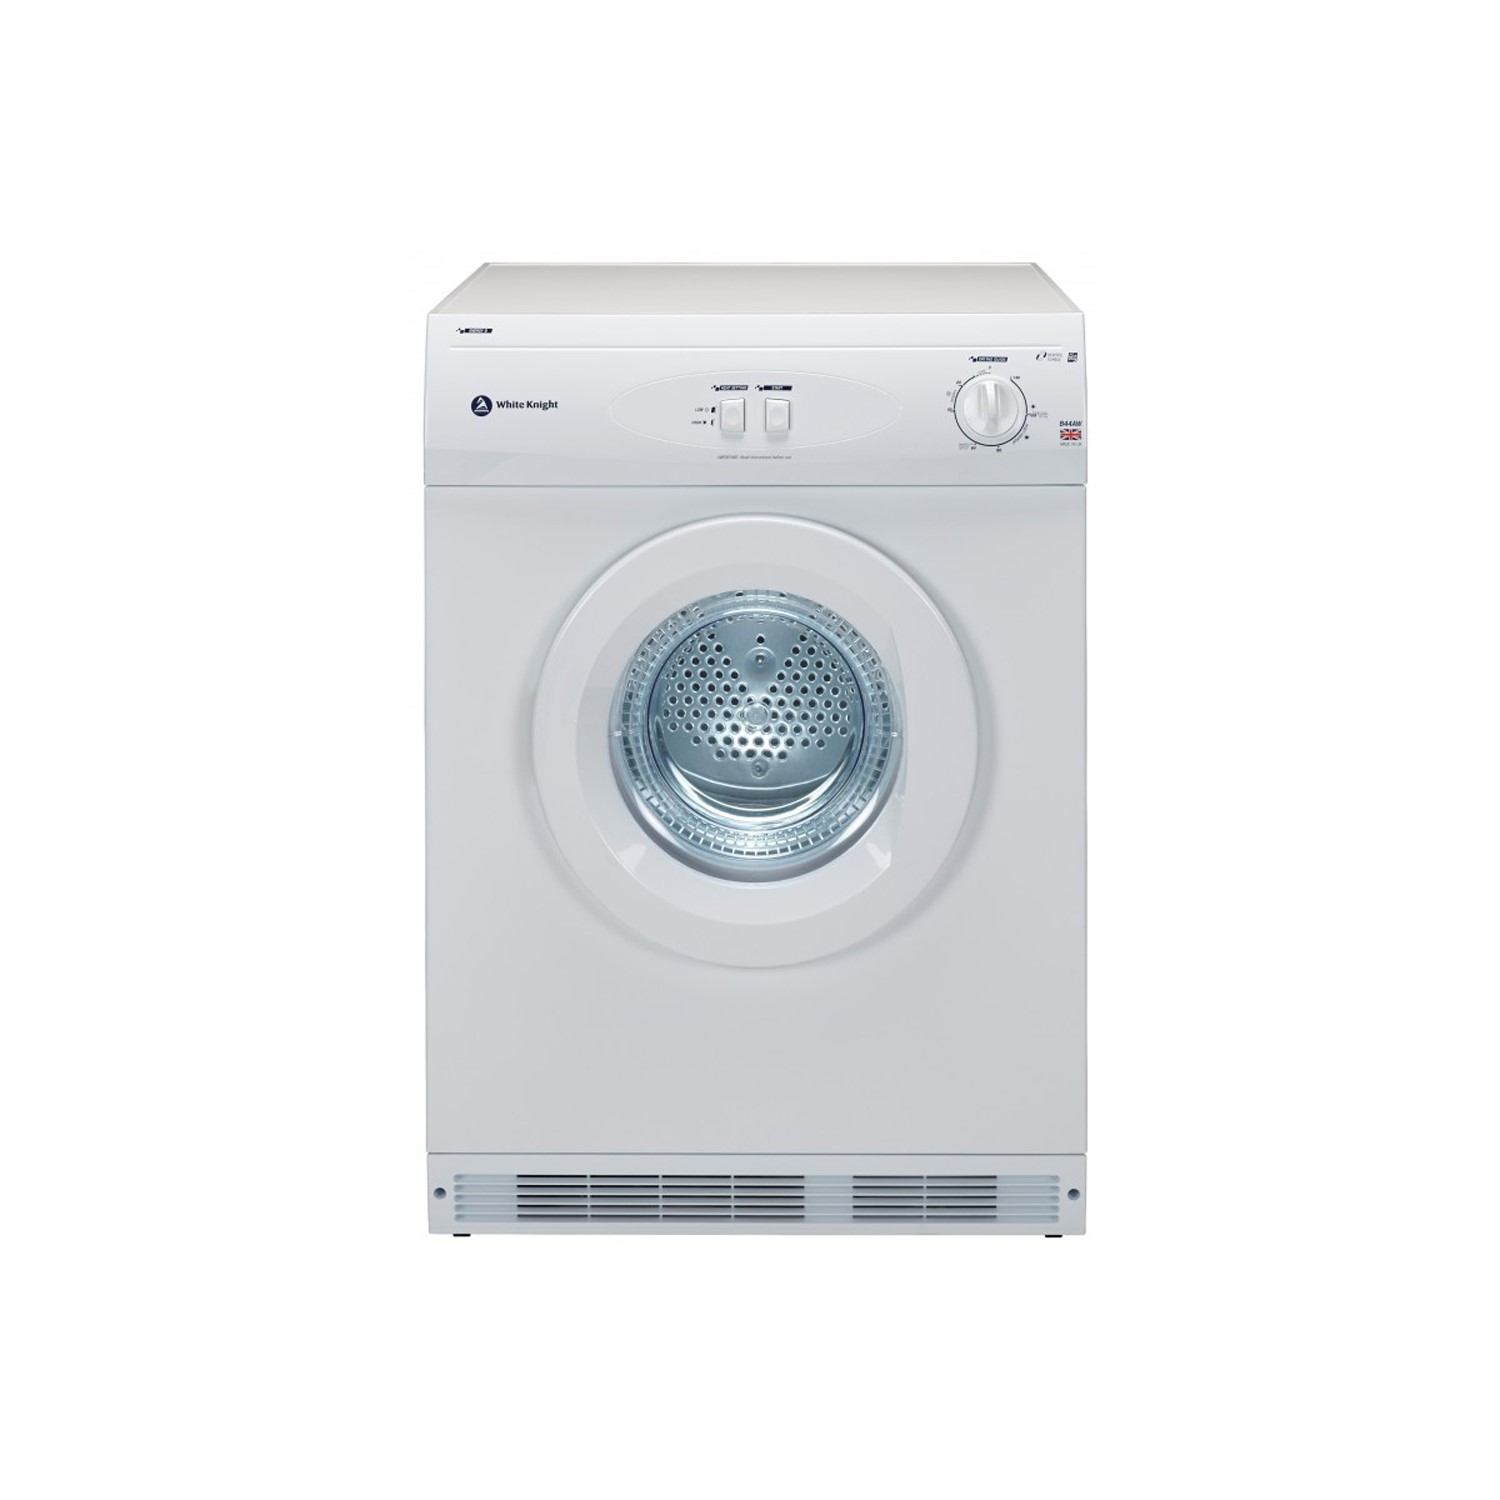 grade a1 white knight b44aw 6kg freestanding vented tumble dryer rh appliancesdirect co uk Holy White Knight Holy White Knight